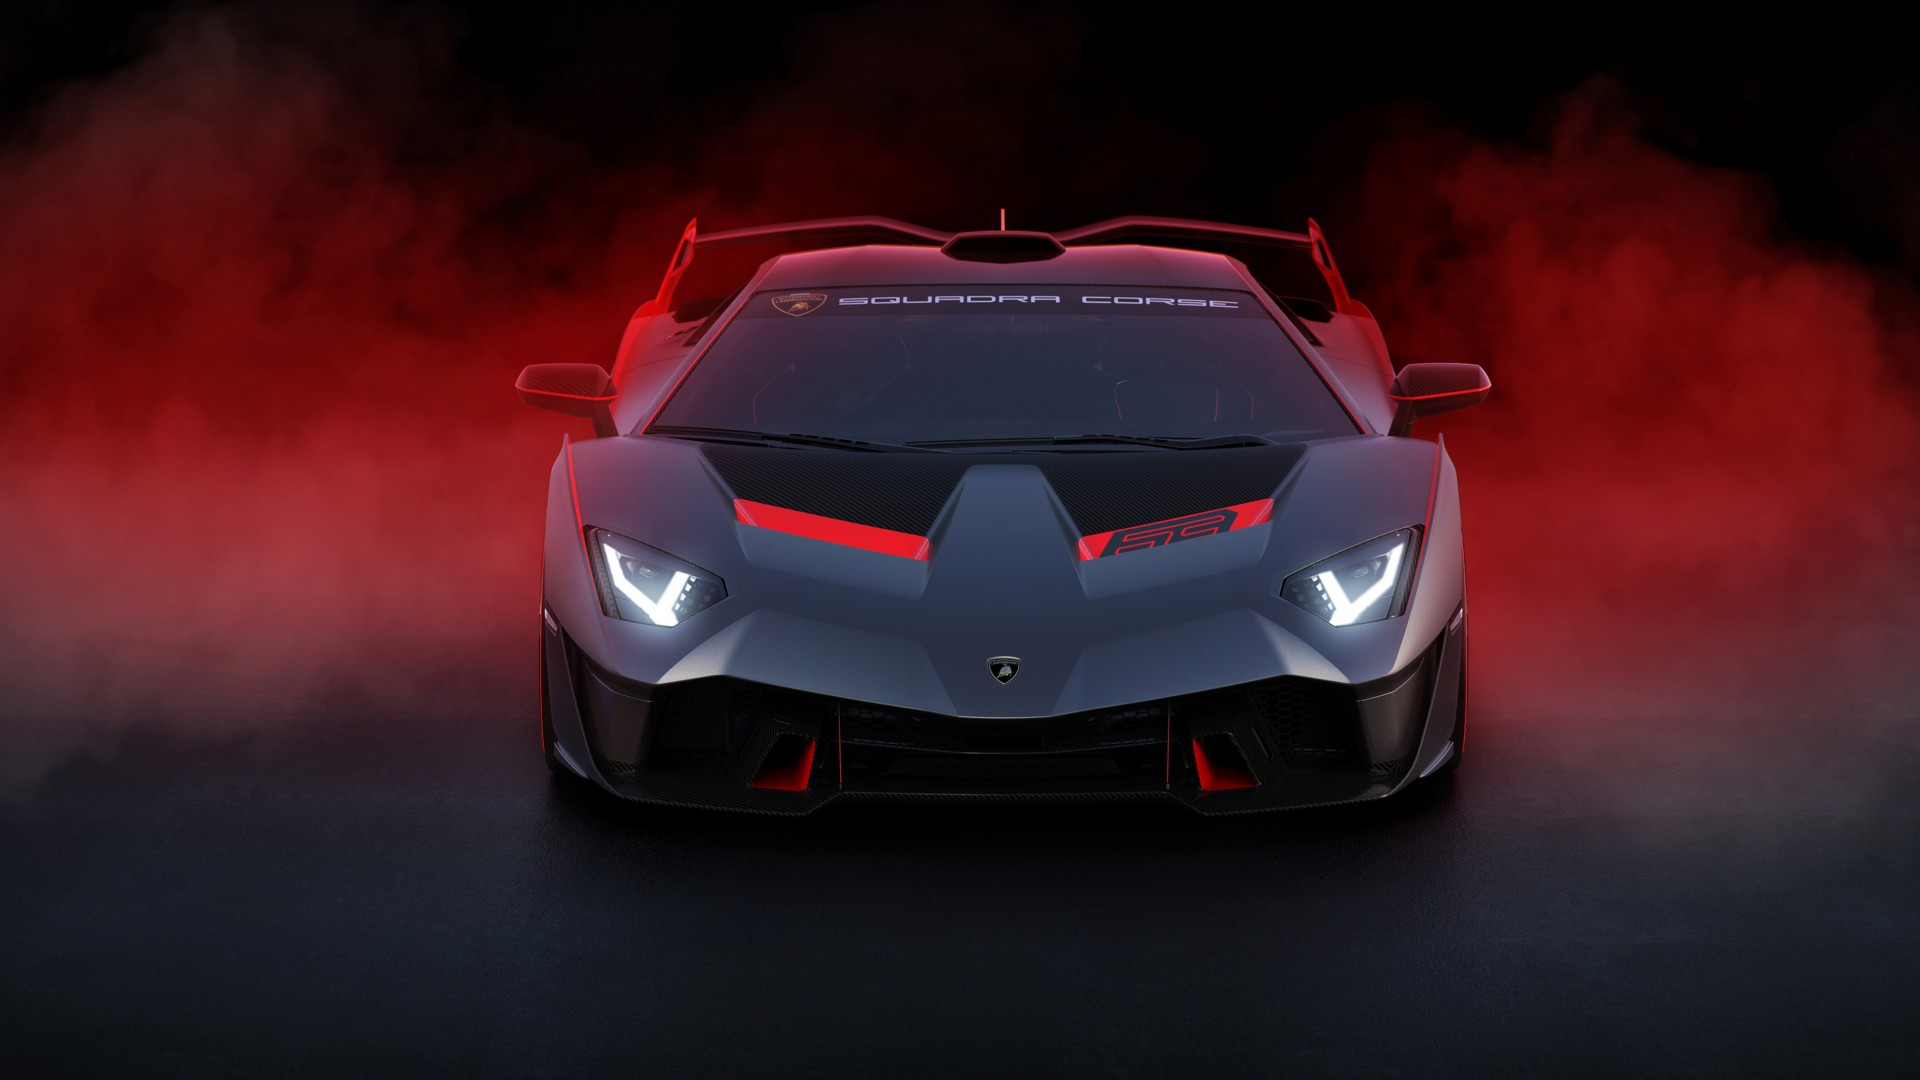 Lamborghini sc18 2019 4k 7 wallpaper hd car wallpapers - Wallpaper hd 4k car ...